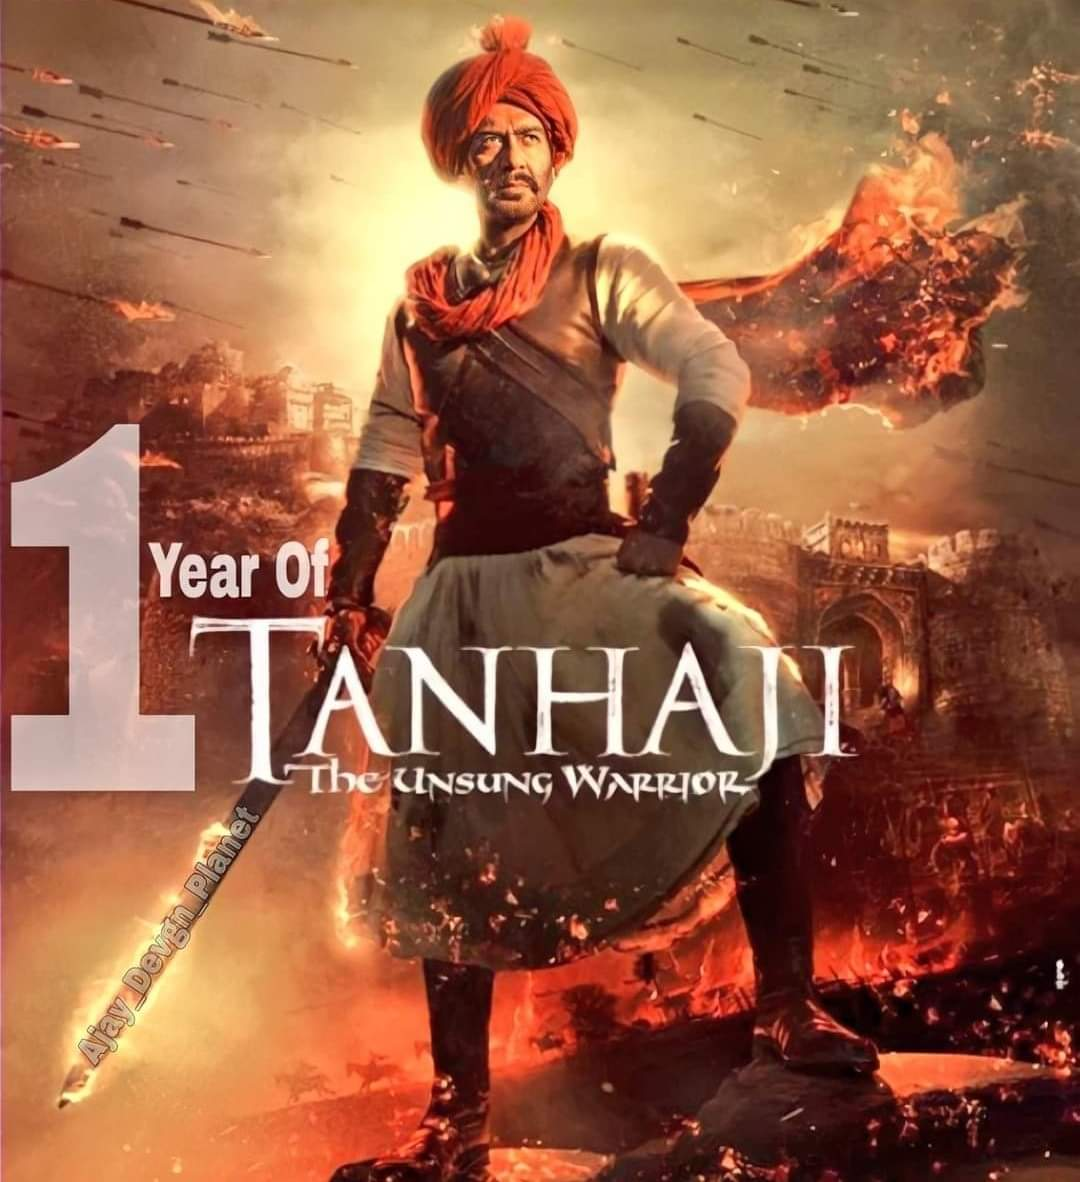 Celebrating 1 YEAR OF HISTORIC TANHAJI. Another powerful and iconic performance by the versatile superstar Ajay Devgn. @ajaydevgn